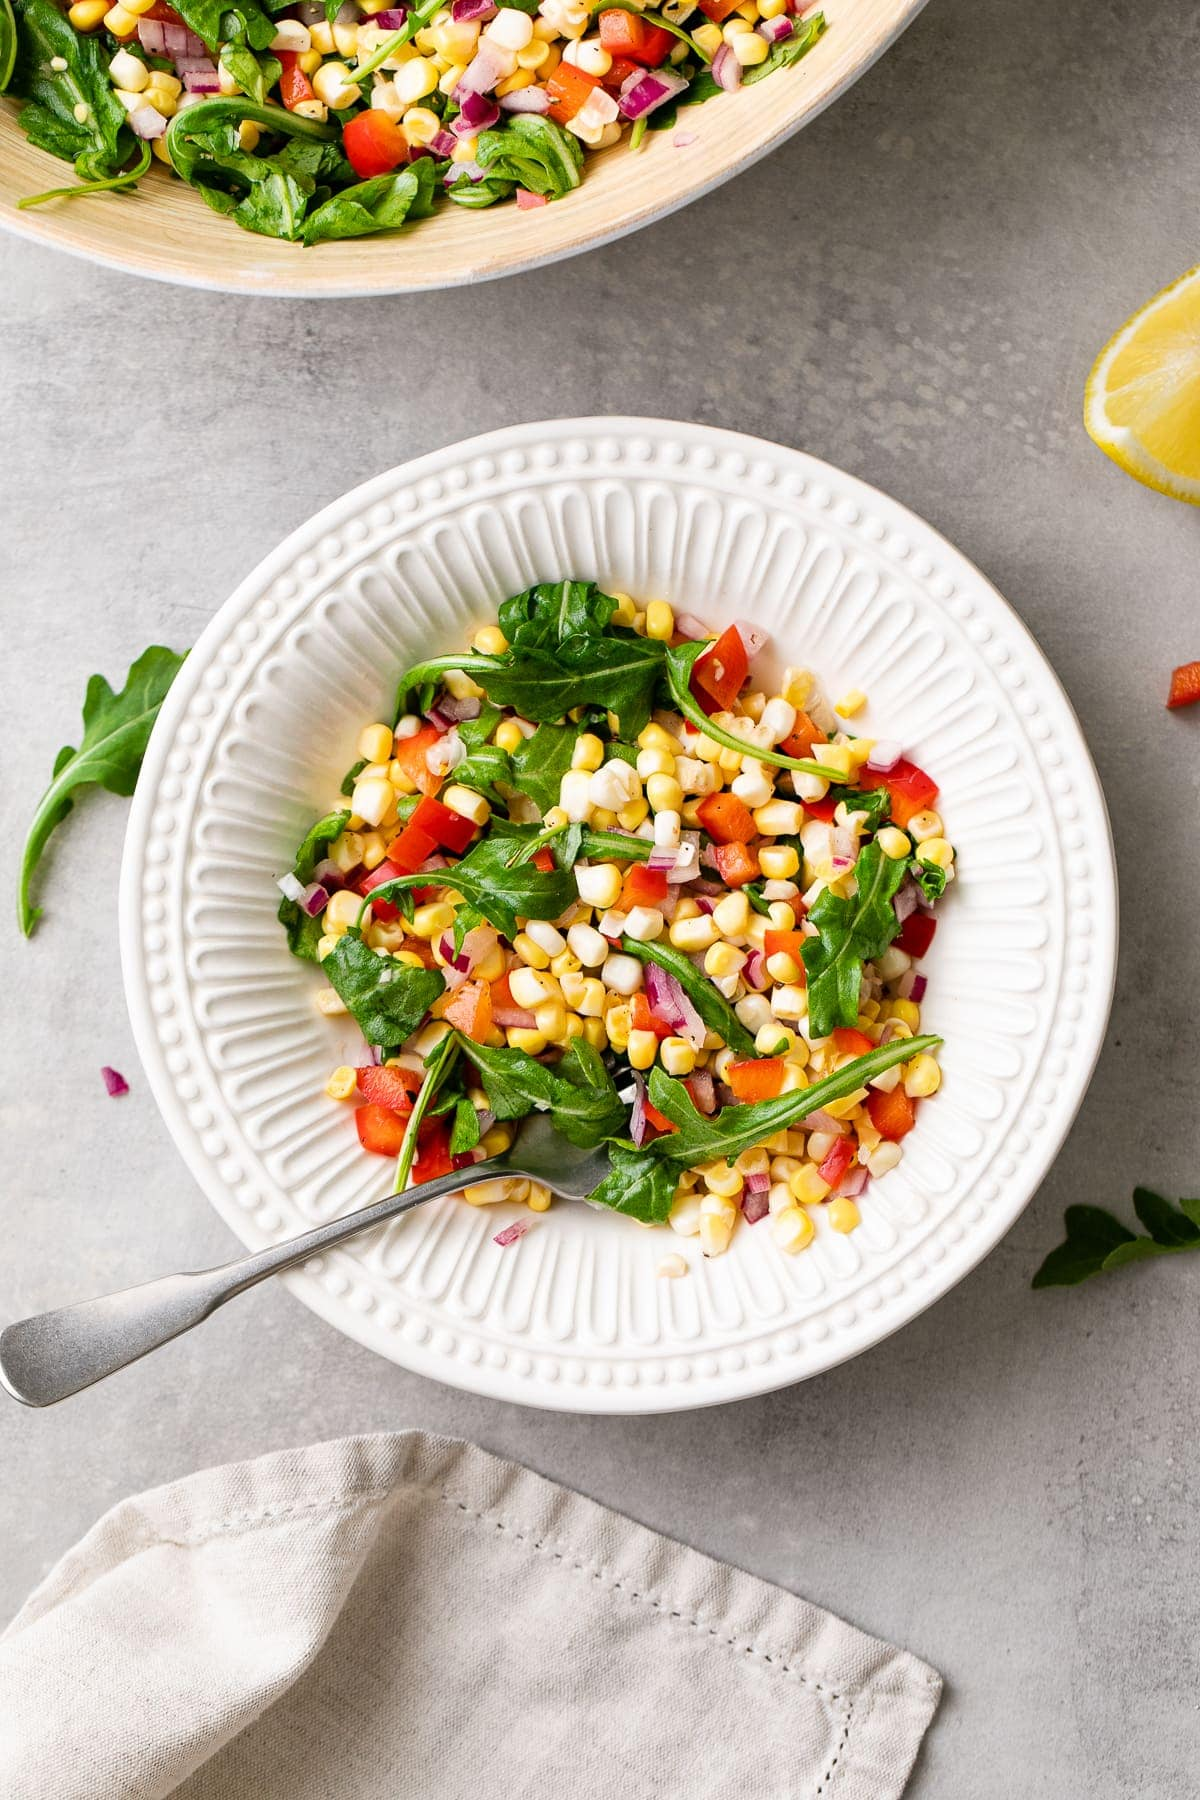 top down view of corn arugula salad in white bowl with fork and items surrounding.